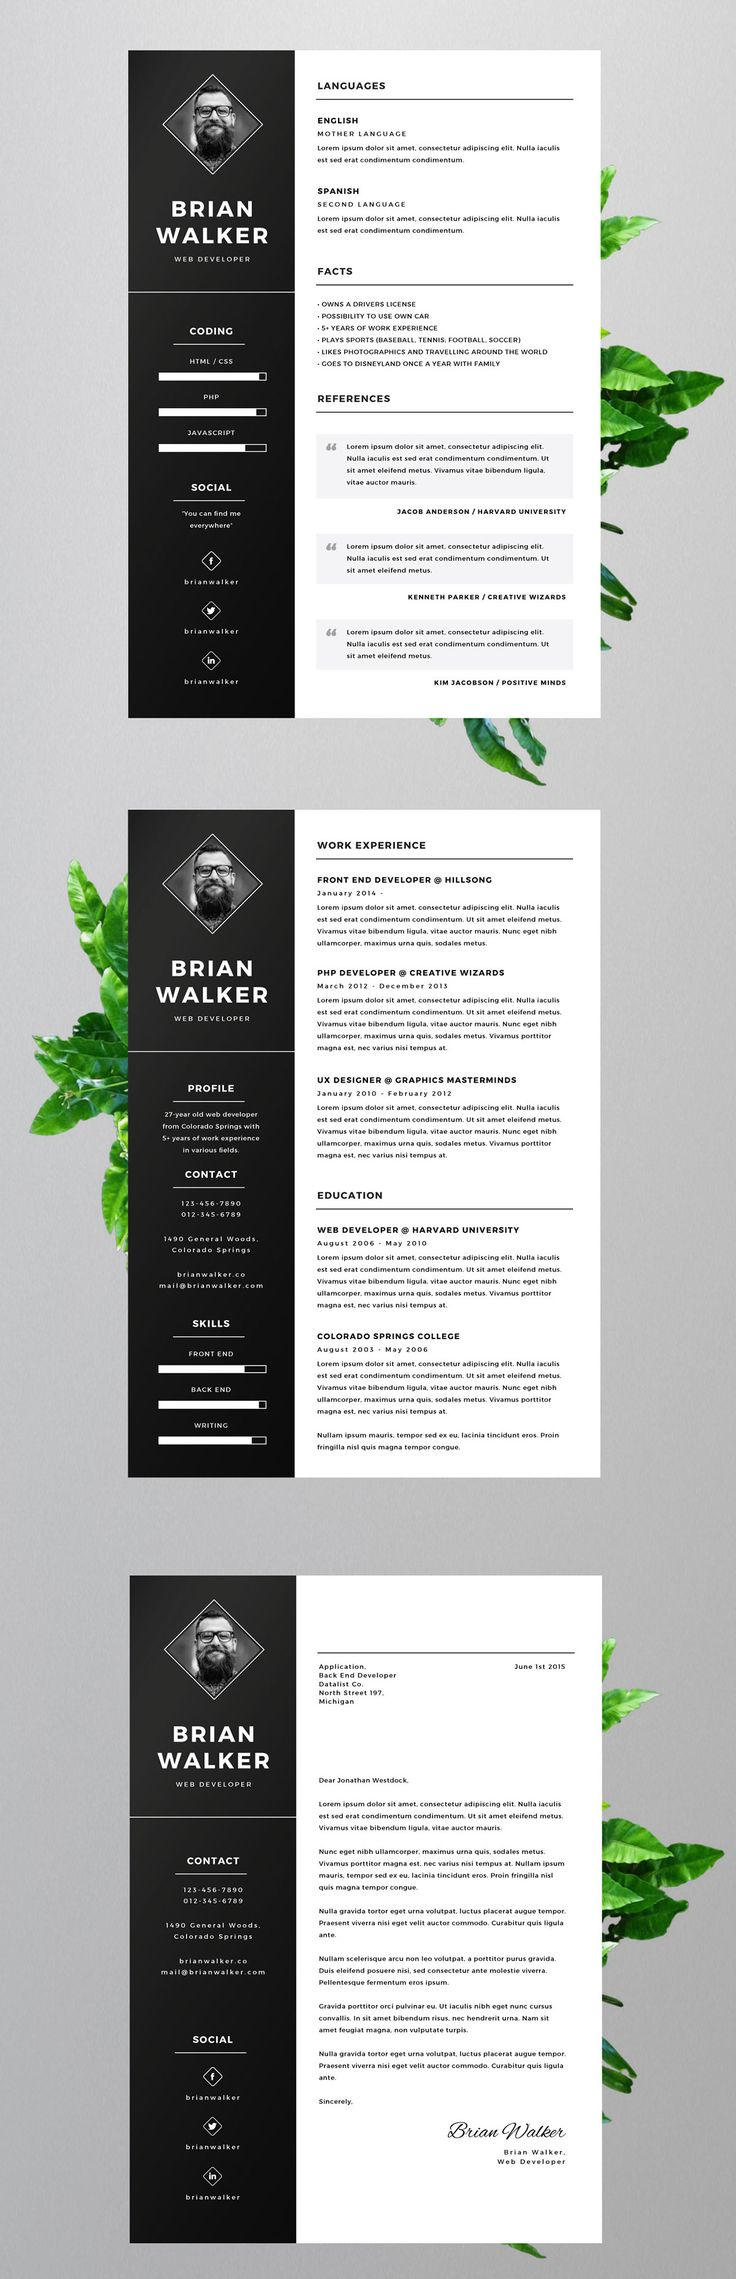 Functional Resume Template Microsoft%0A Free resume template for Microsoft Word  Adobe Photoshop and Adobe  Illustrator  Free for personal